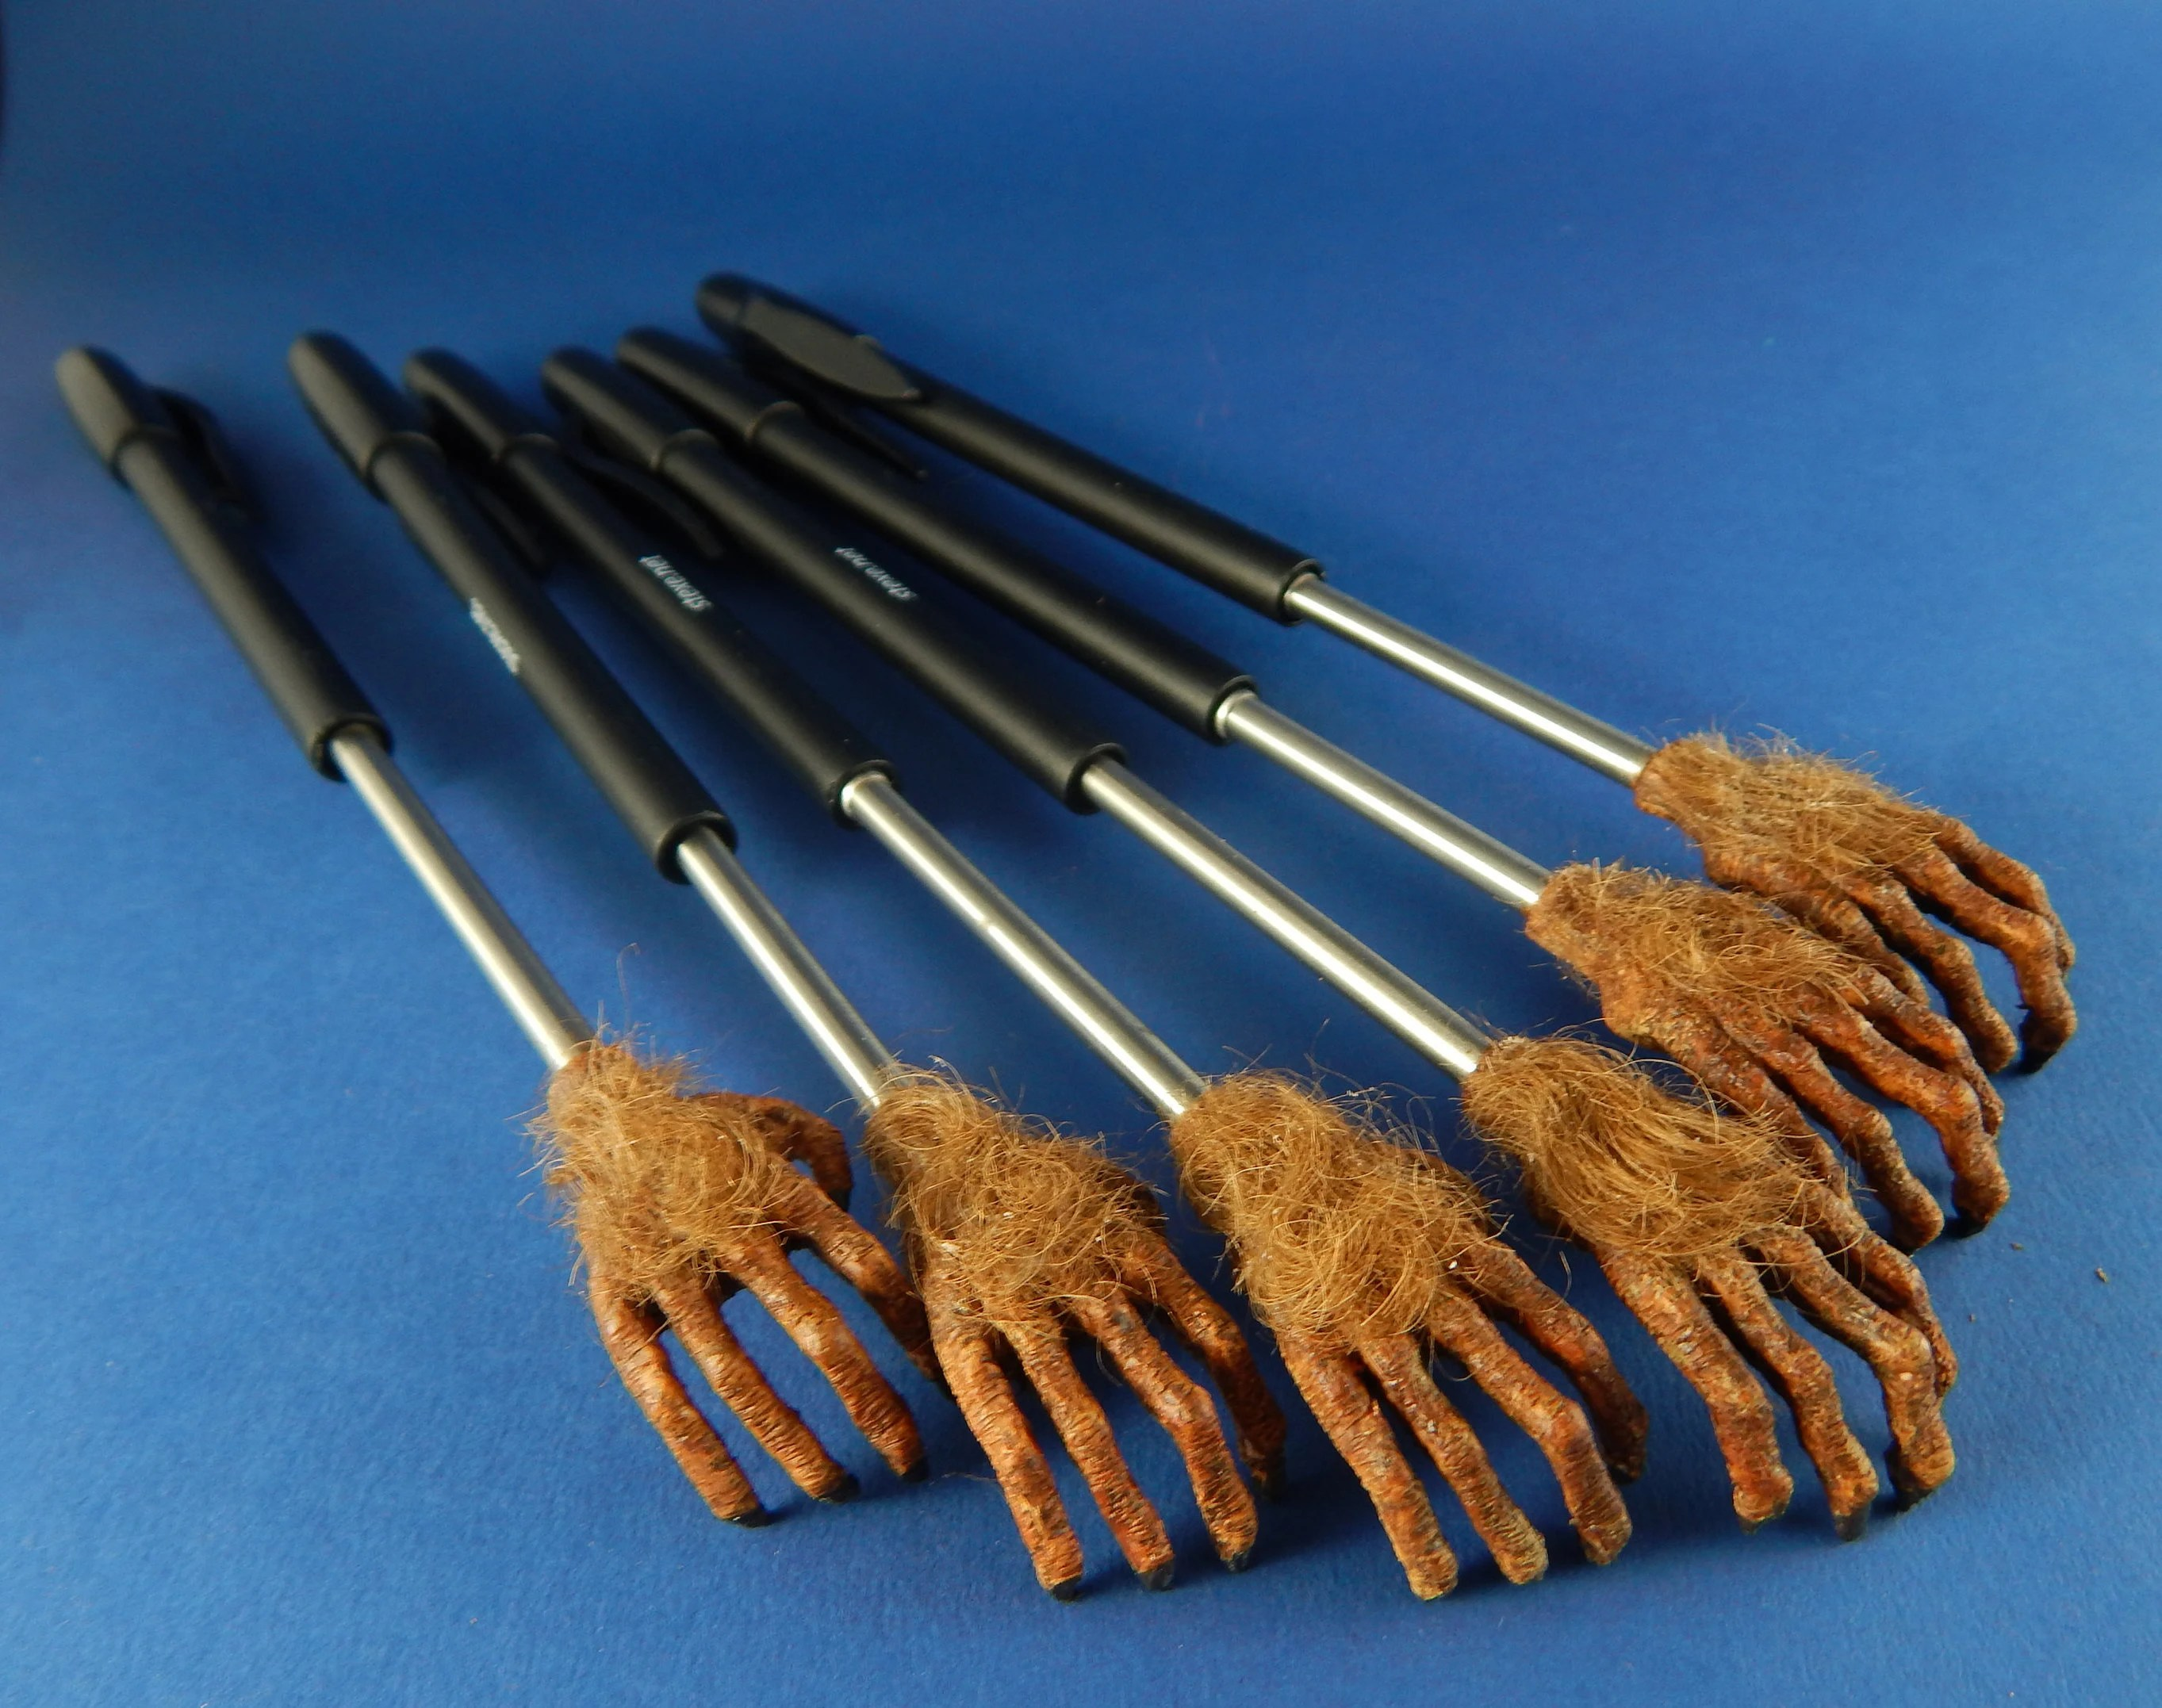 Monkey S Paw Backscratcher